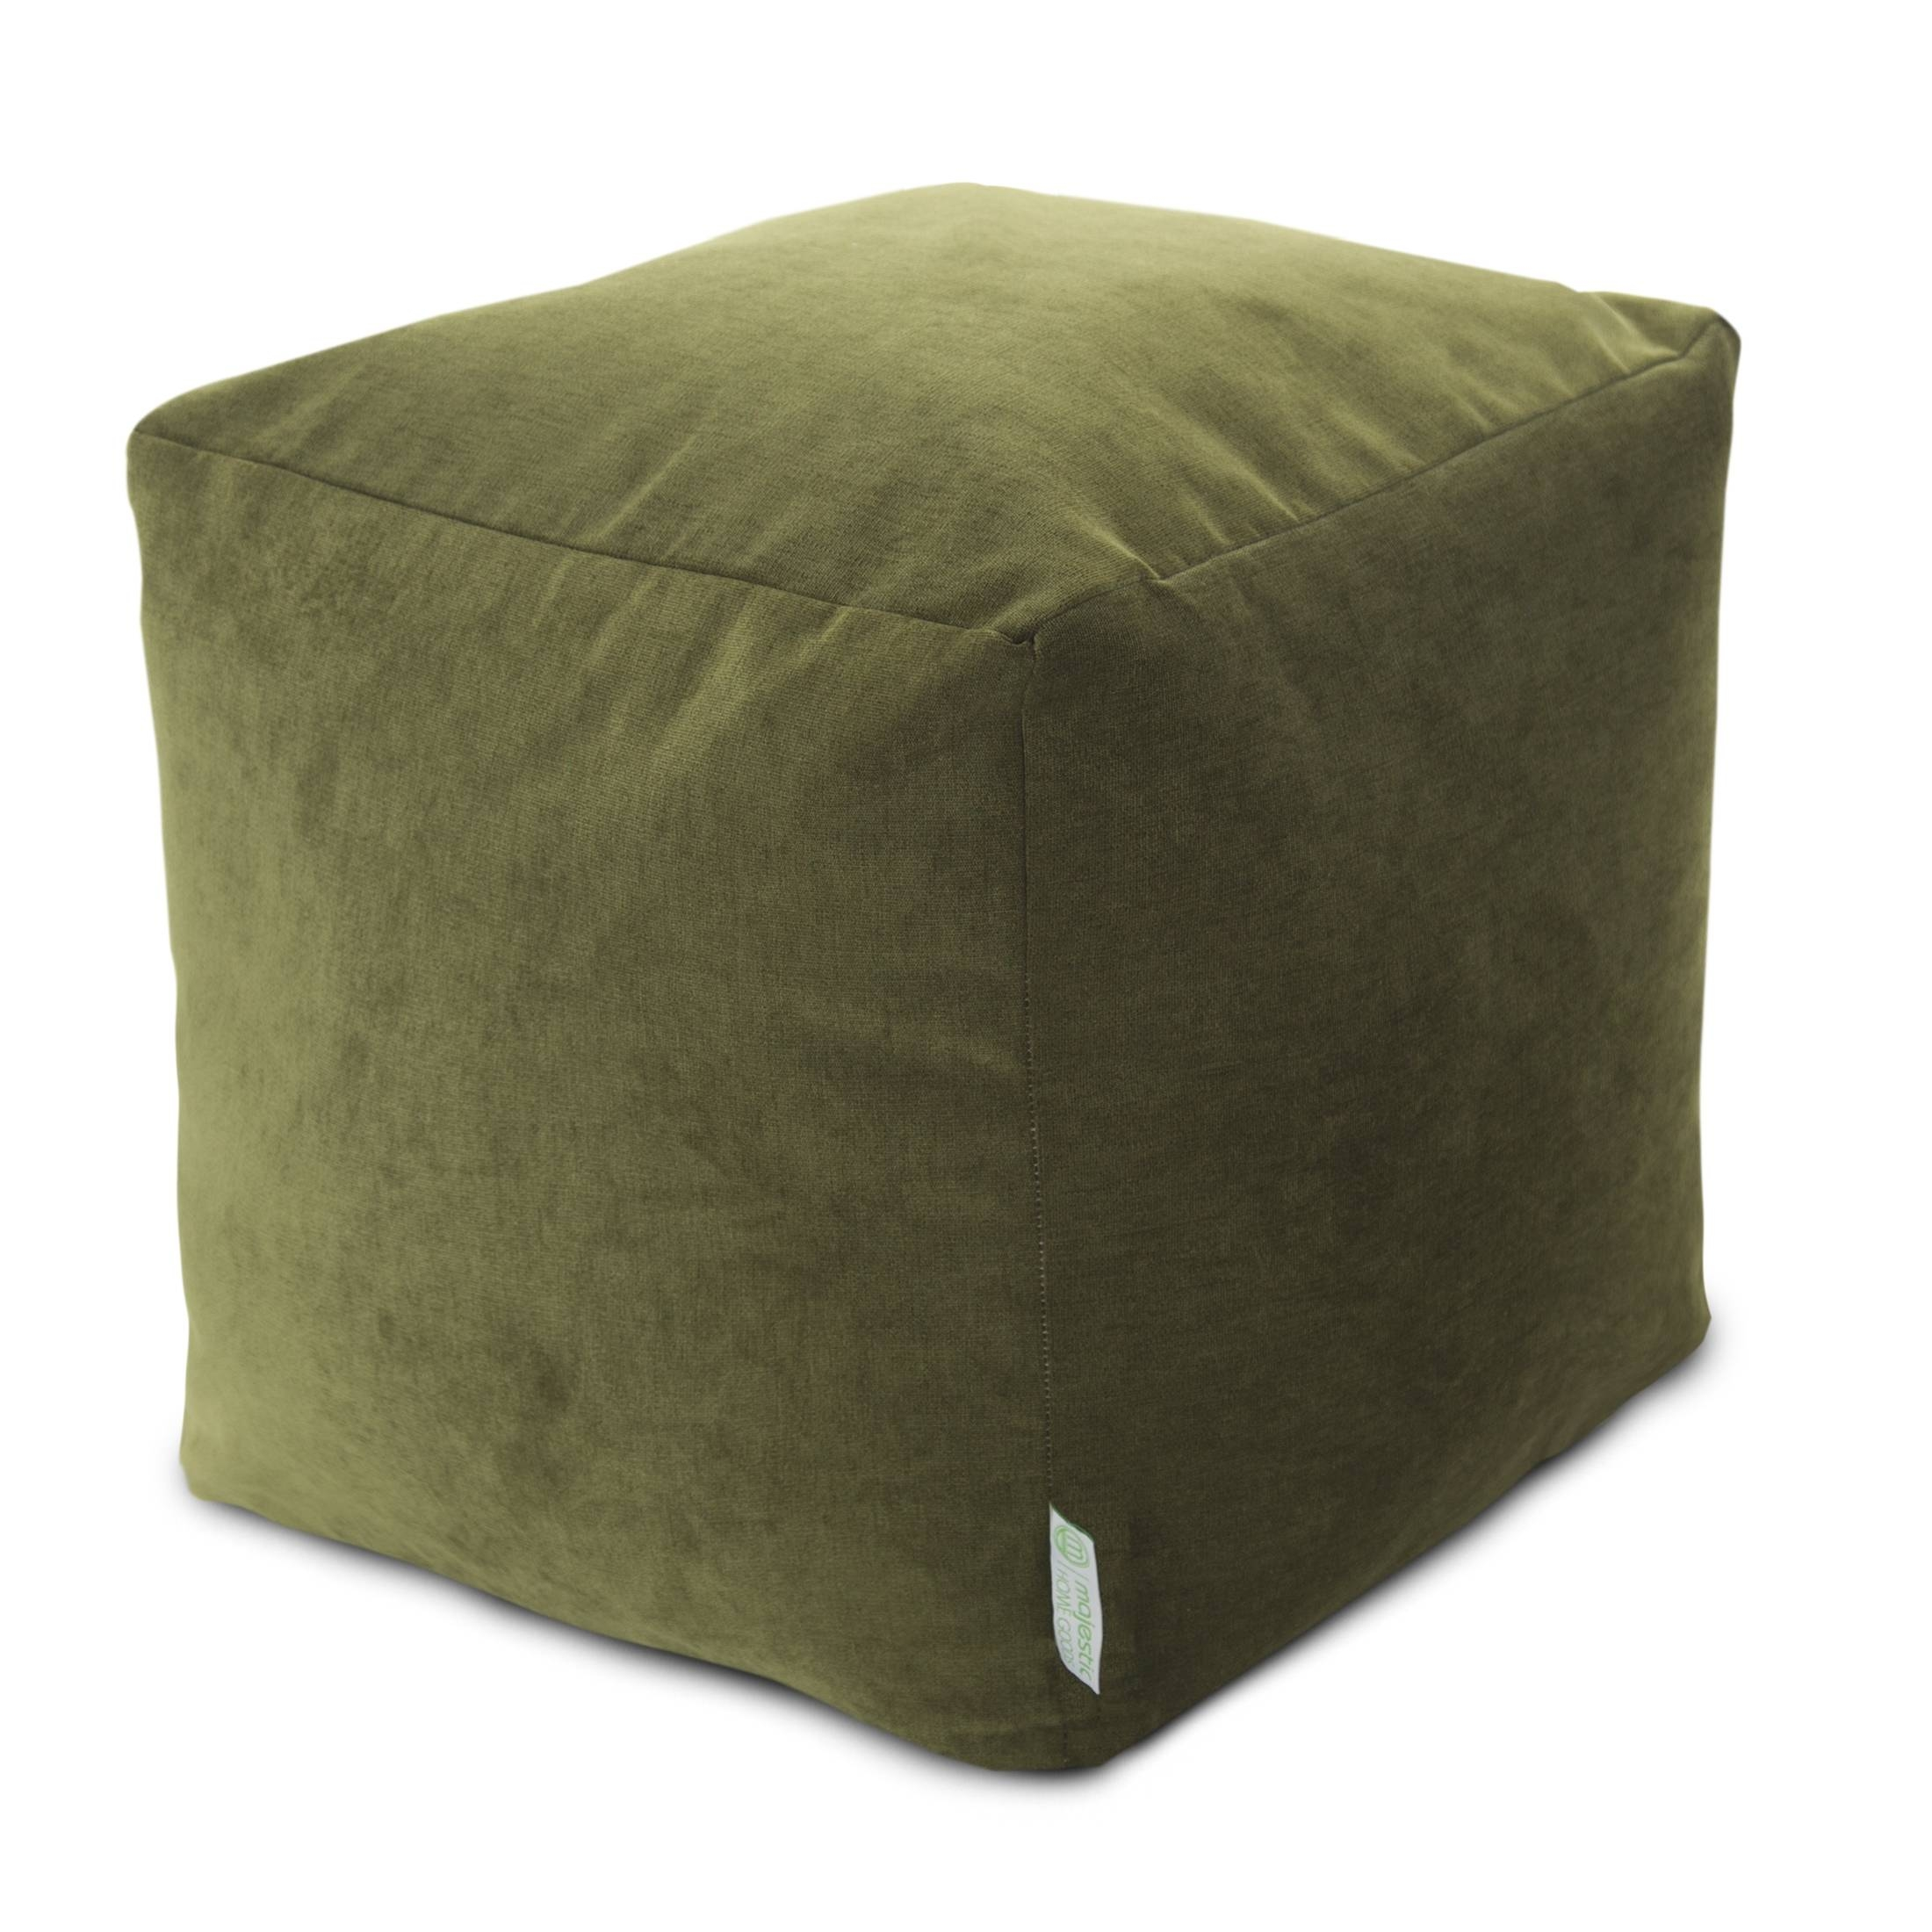 Cubes | Poufs | Footstools | Majestic Home Goods intended for Velvet Footstool (Image 17 of 30)